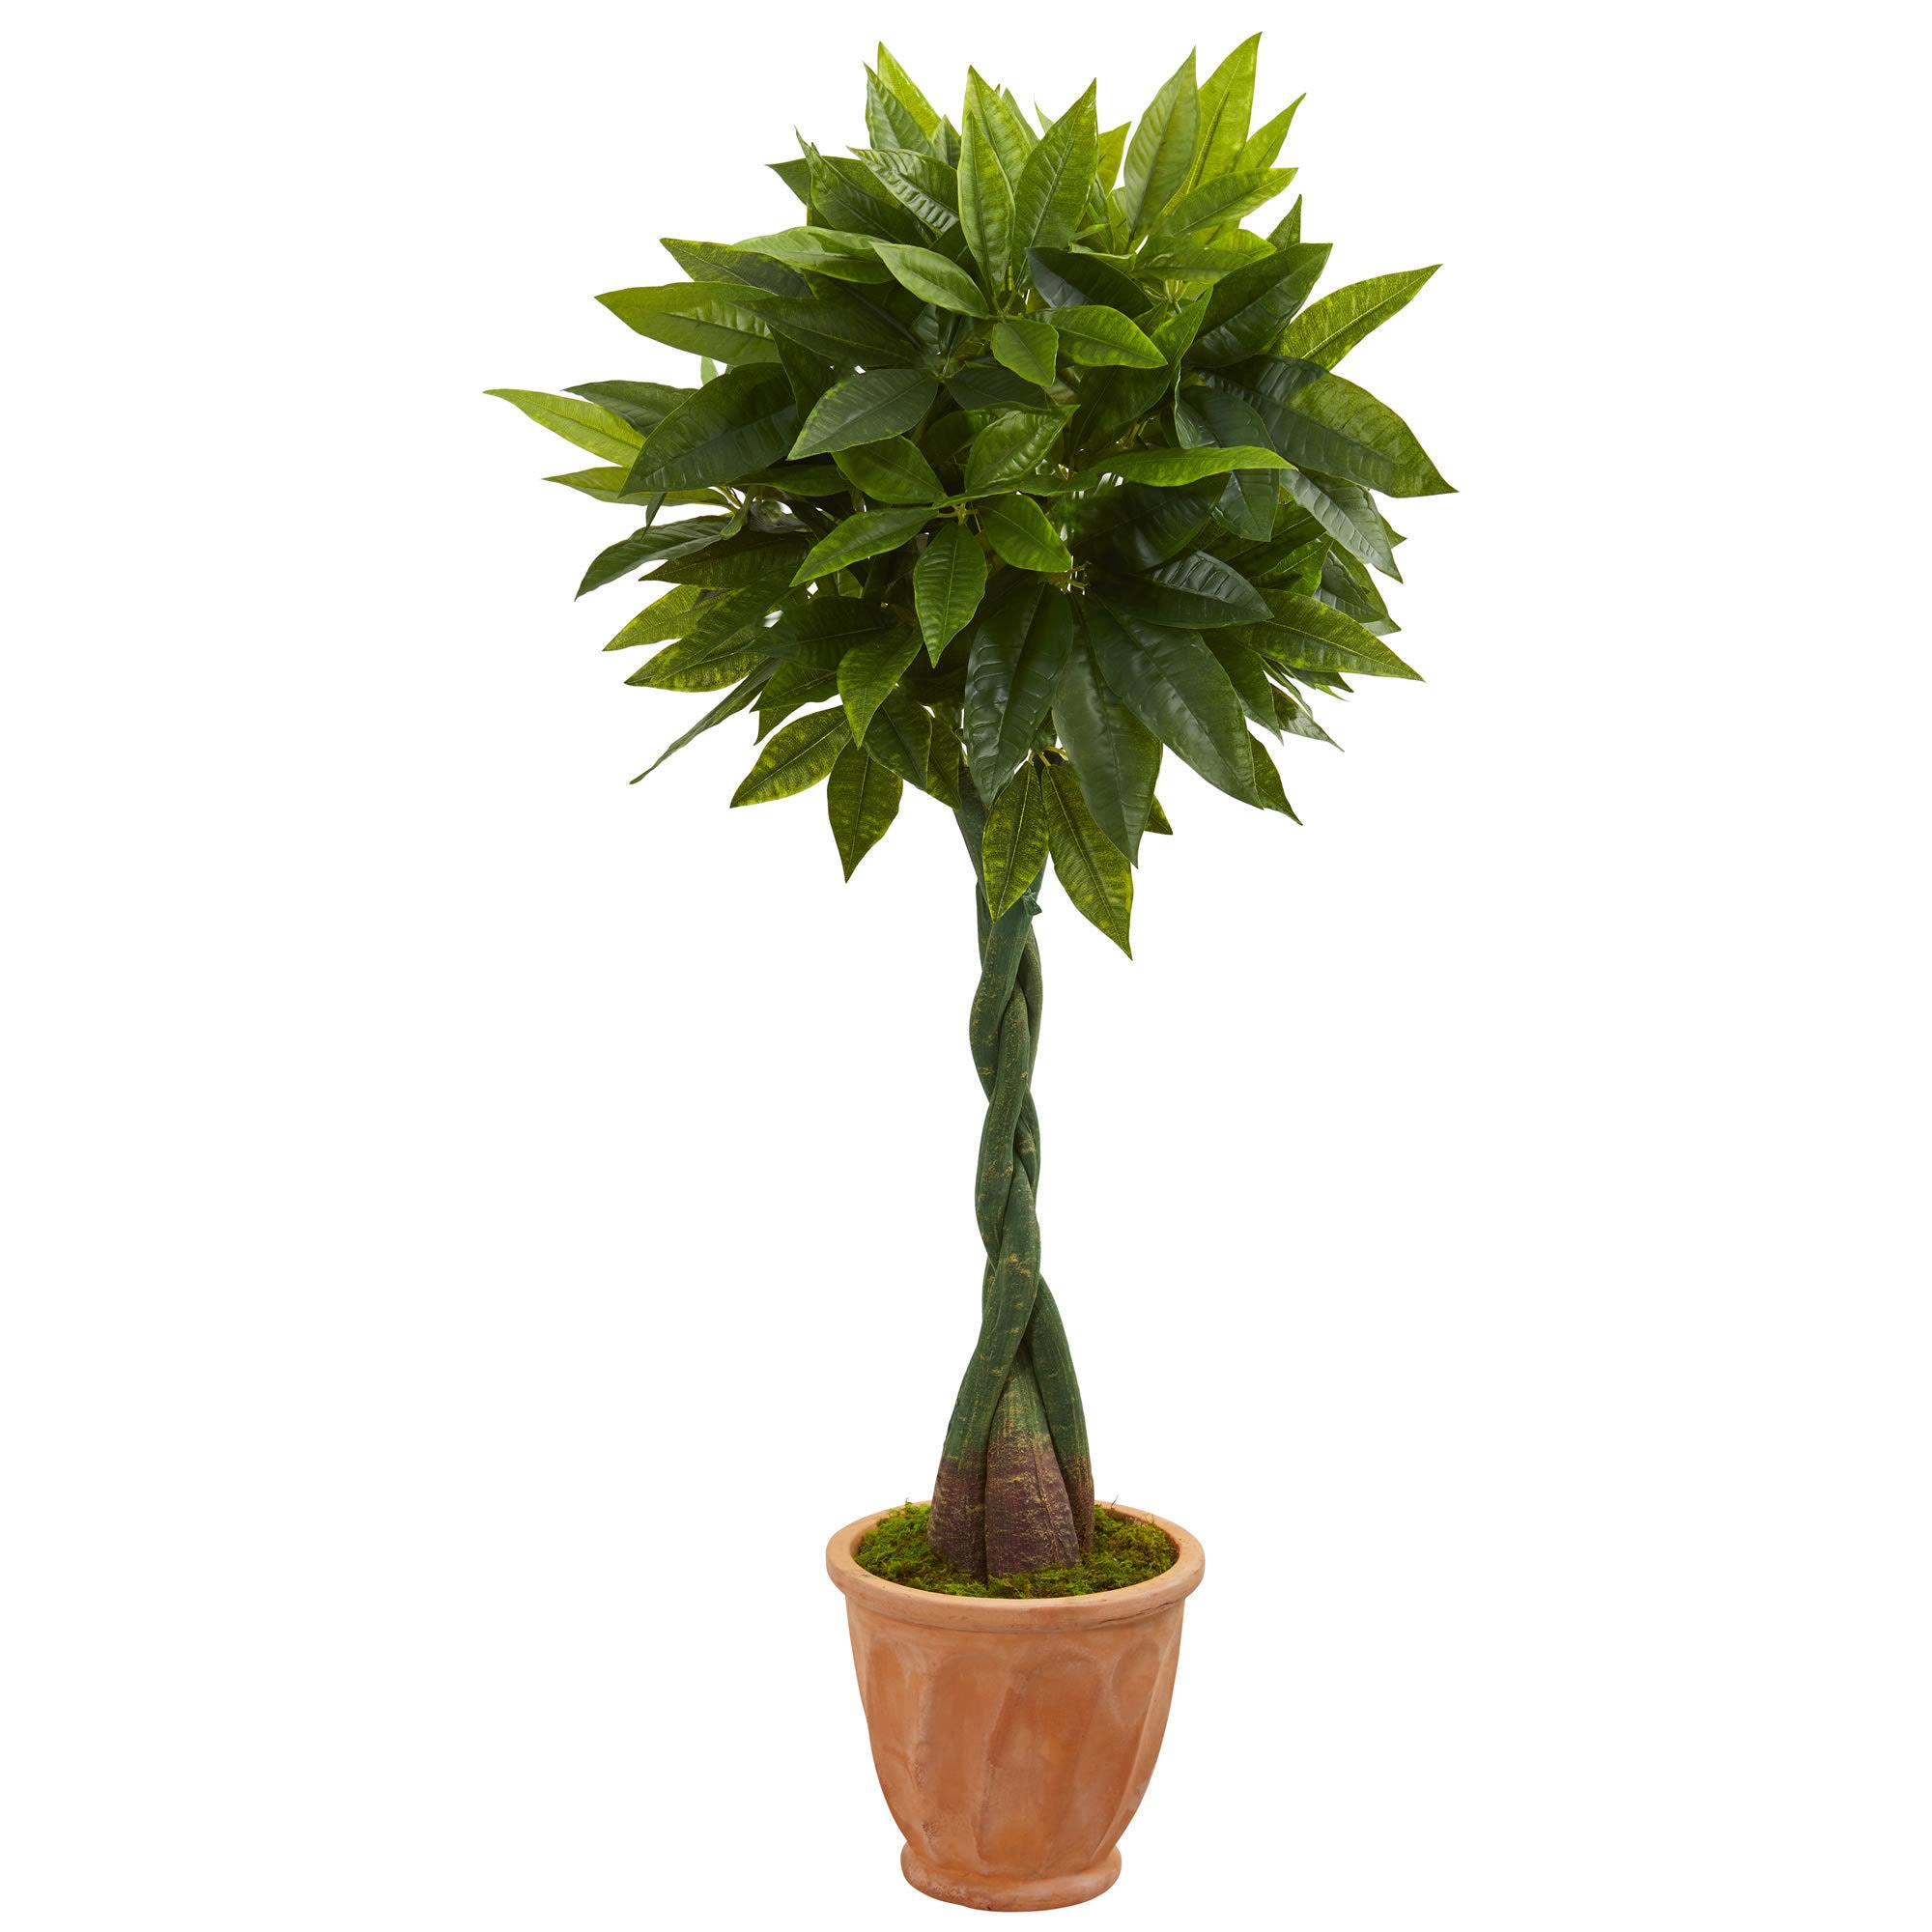 5' Money Artificial Tree in Terracotta Planter (Real Touch) | eBay